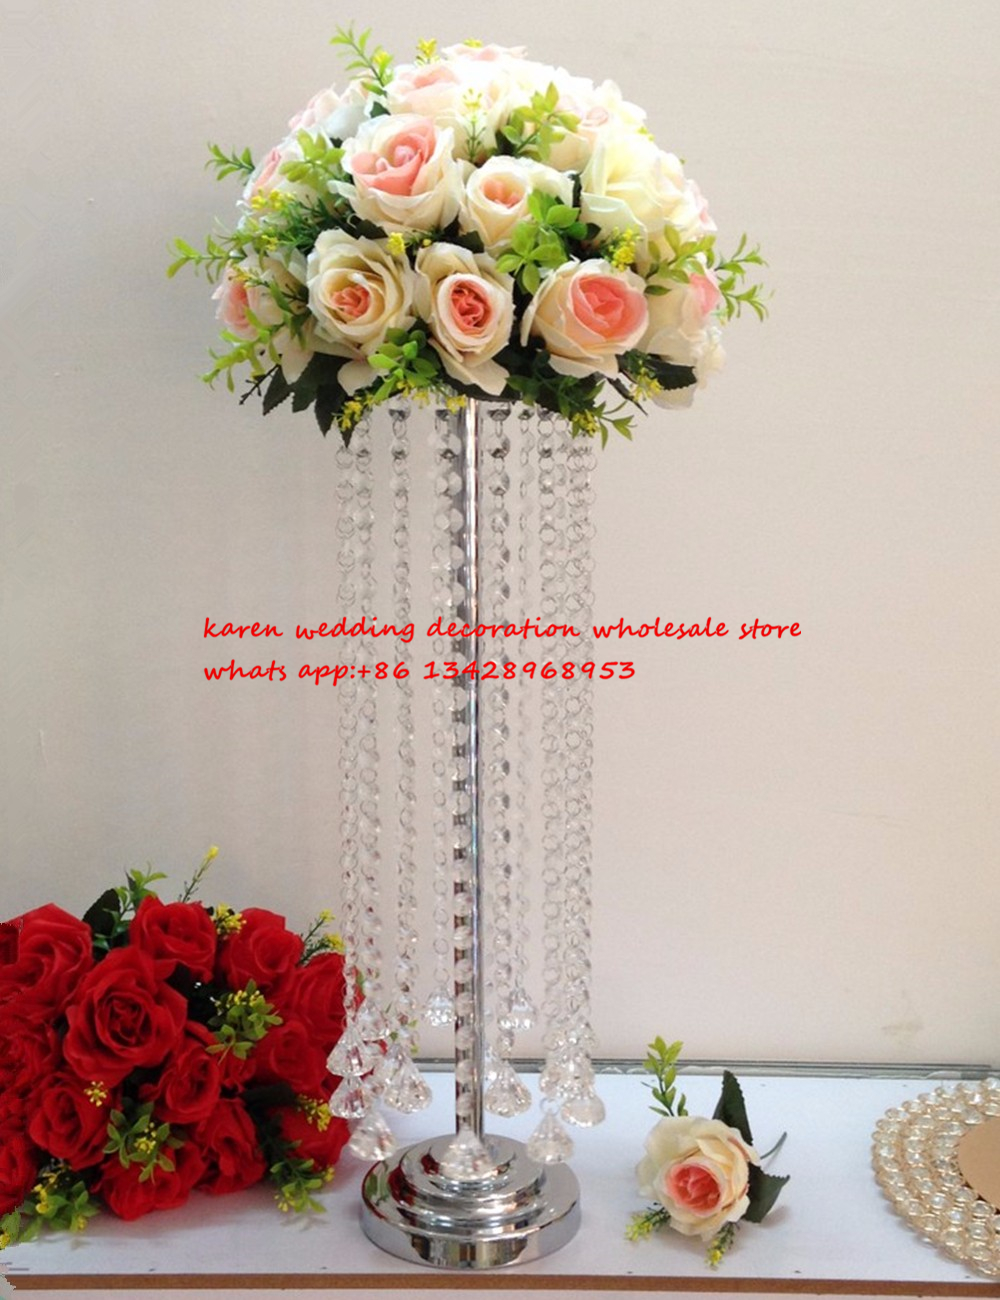 Buy Cheap Wedding Centerpieces And Get Free Shipping On Aliexpress